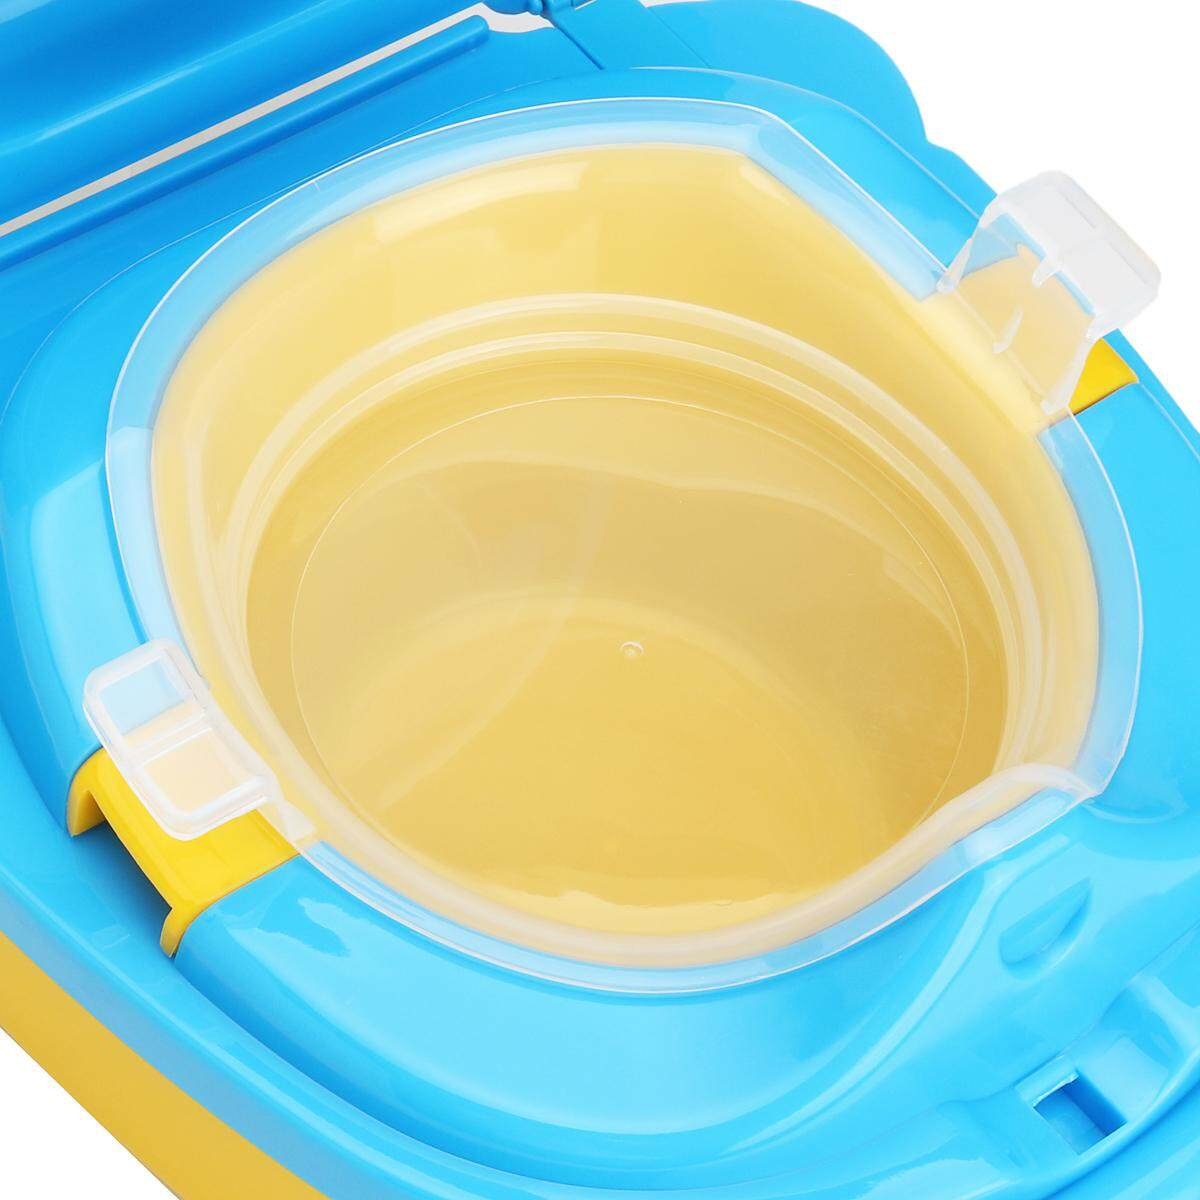 Features Anak Bayi Balita Portabel Dudukan Toilet Botol Tempat Pipis Travel N Trainer For Kids Urinoir Pot Kencing Kursi Latihan Kuning